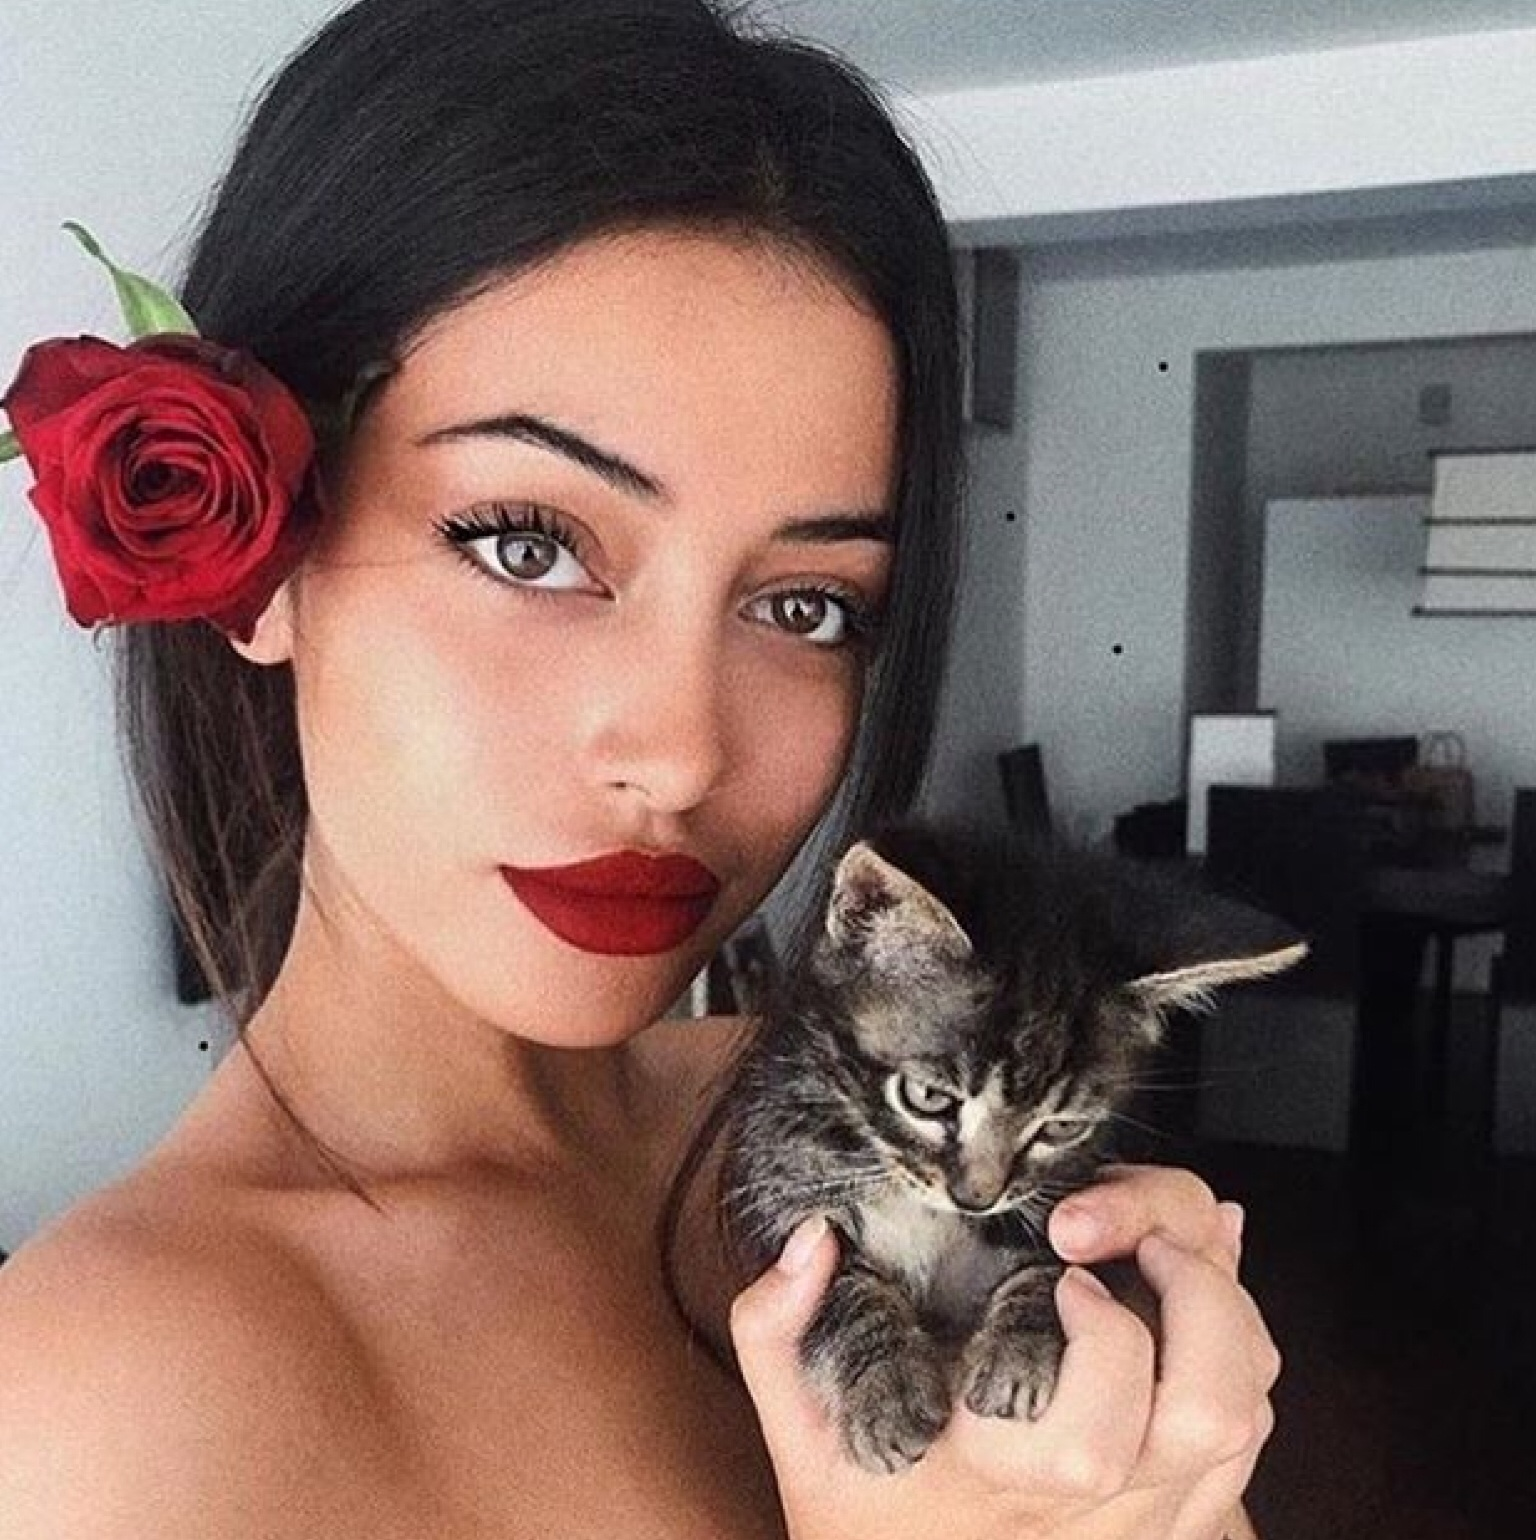 cindy kimberly, lady woman women, girly girls girl, glam glamorous glamour, chic classy trend